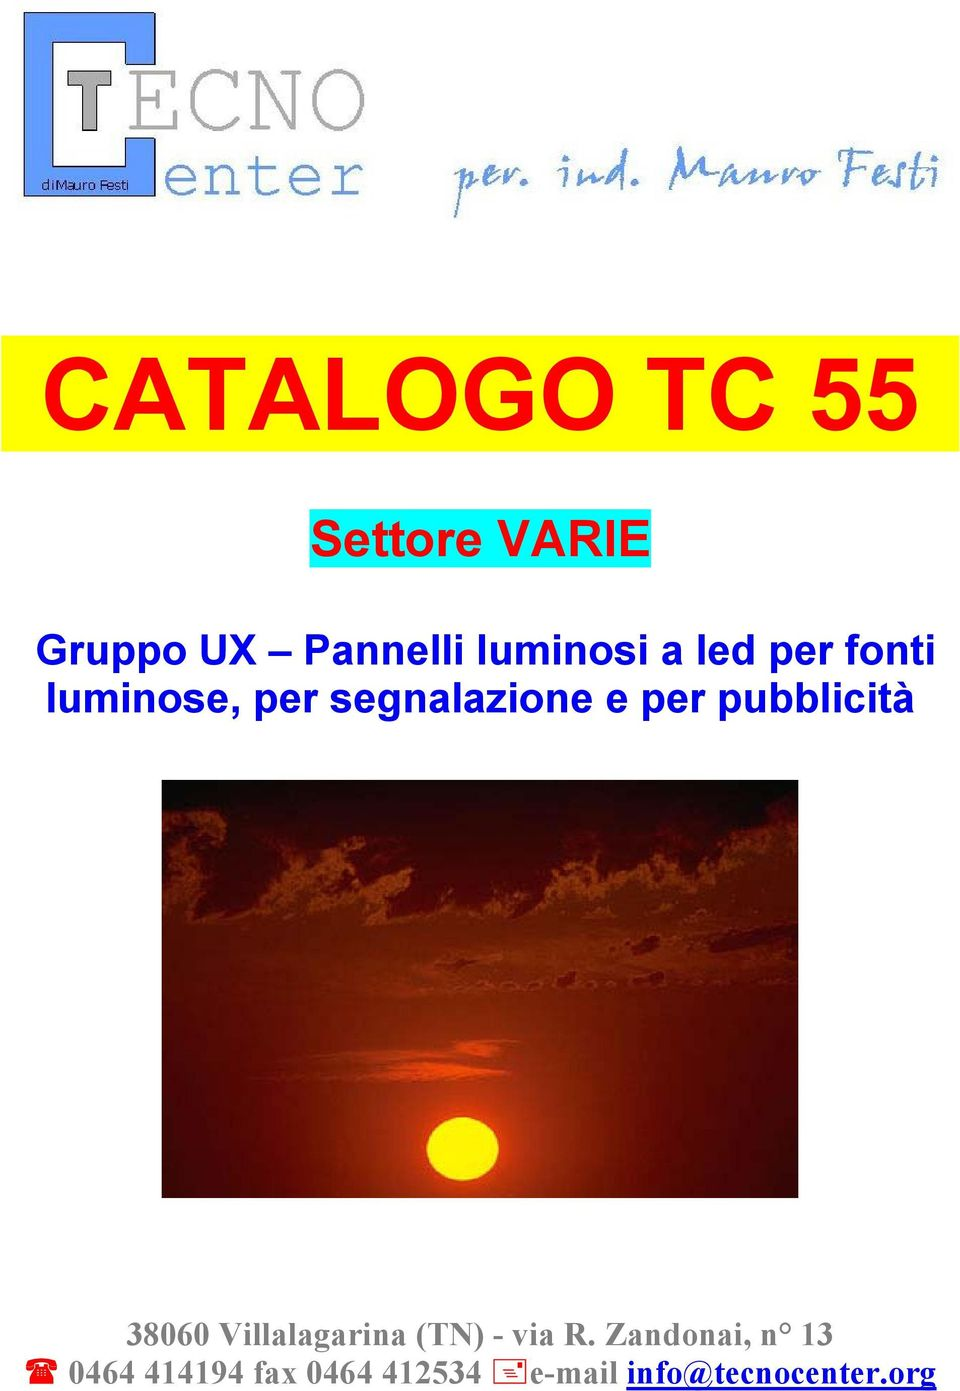 led per fonti luminose, per